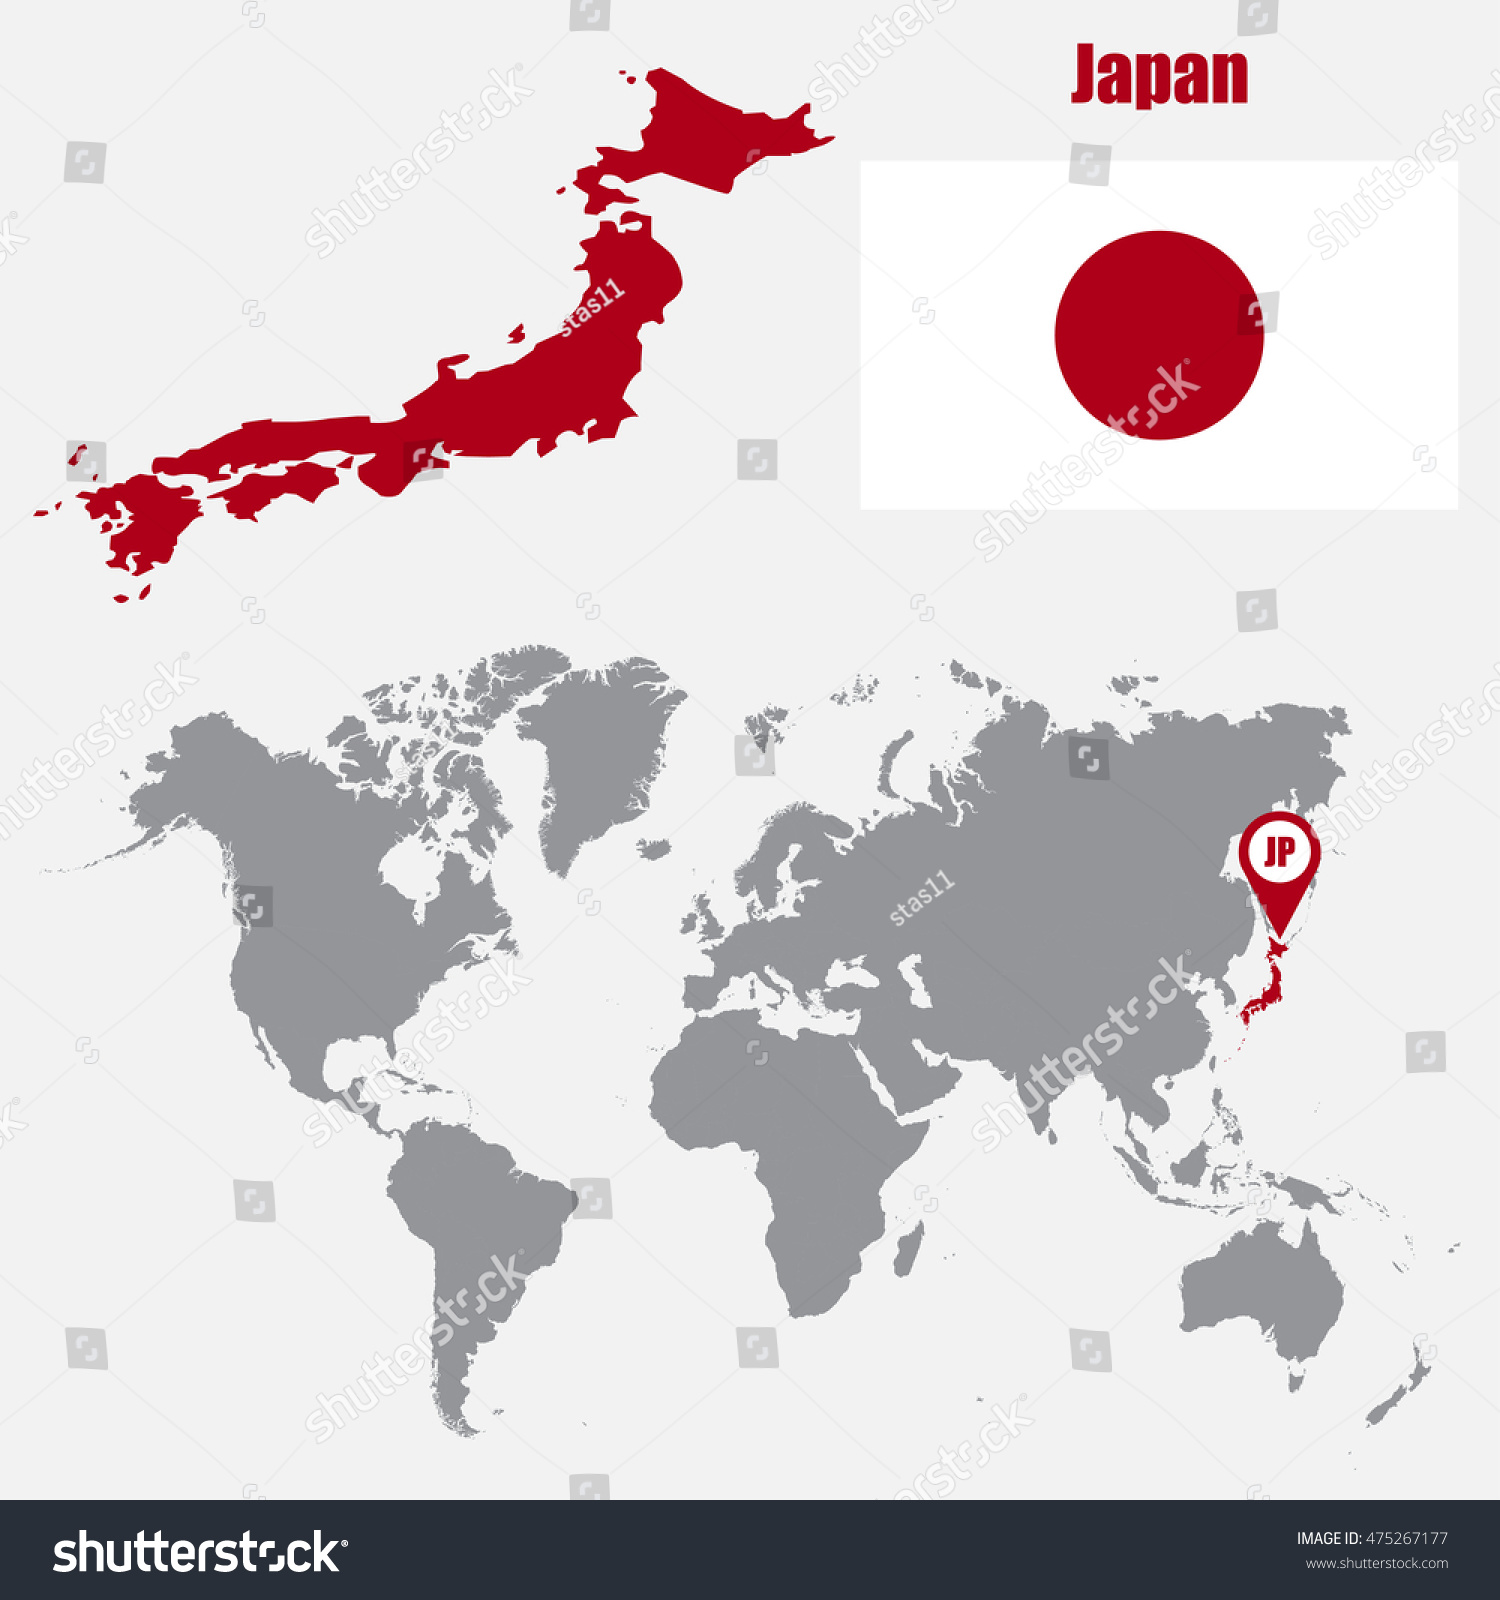 Japan Map On World Map Flag Stock Vector Shutterstock - Japan map in world map